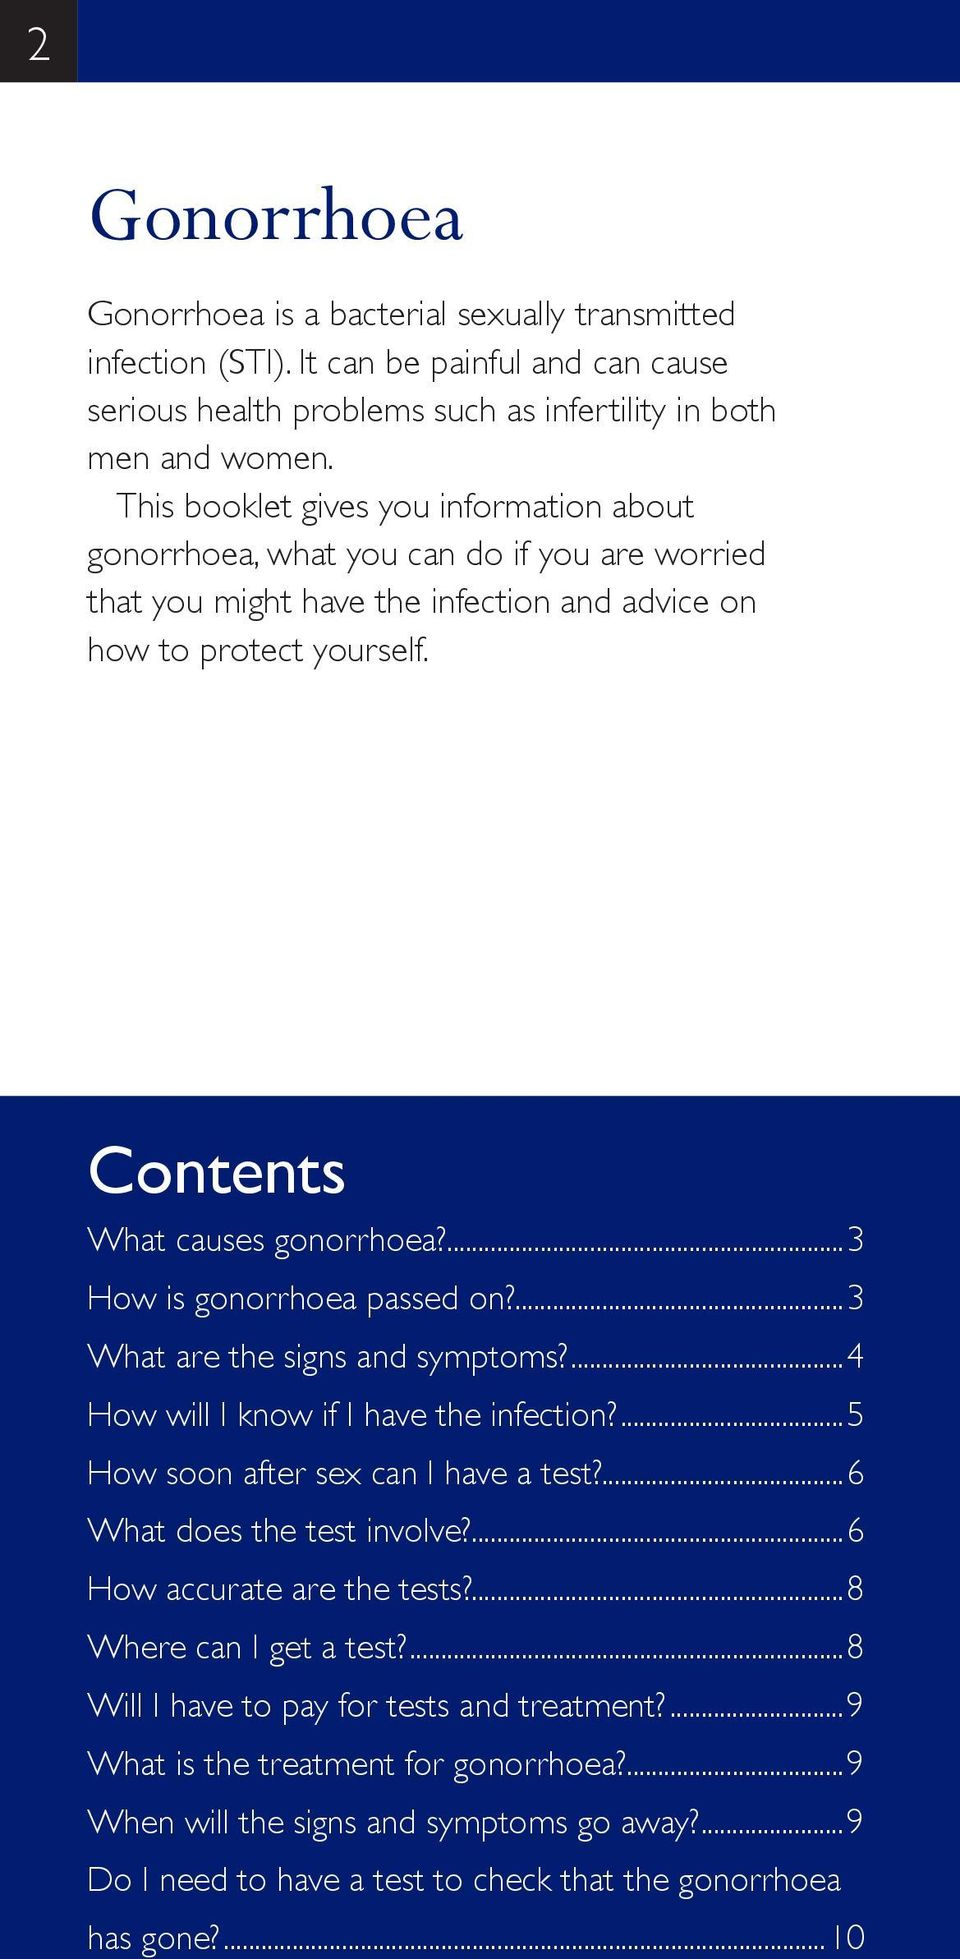 ...3 How is gonorrhoea passed on?...3 What are the signs and symptoms?...4 How will I know if I have the infection?...5 How soon after sex can I have a test?...6 What does the test involve?